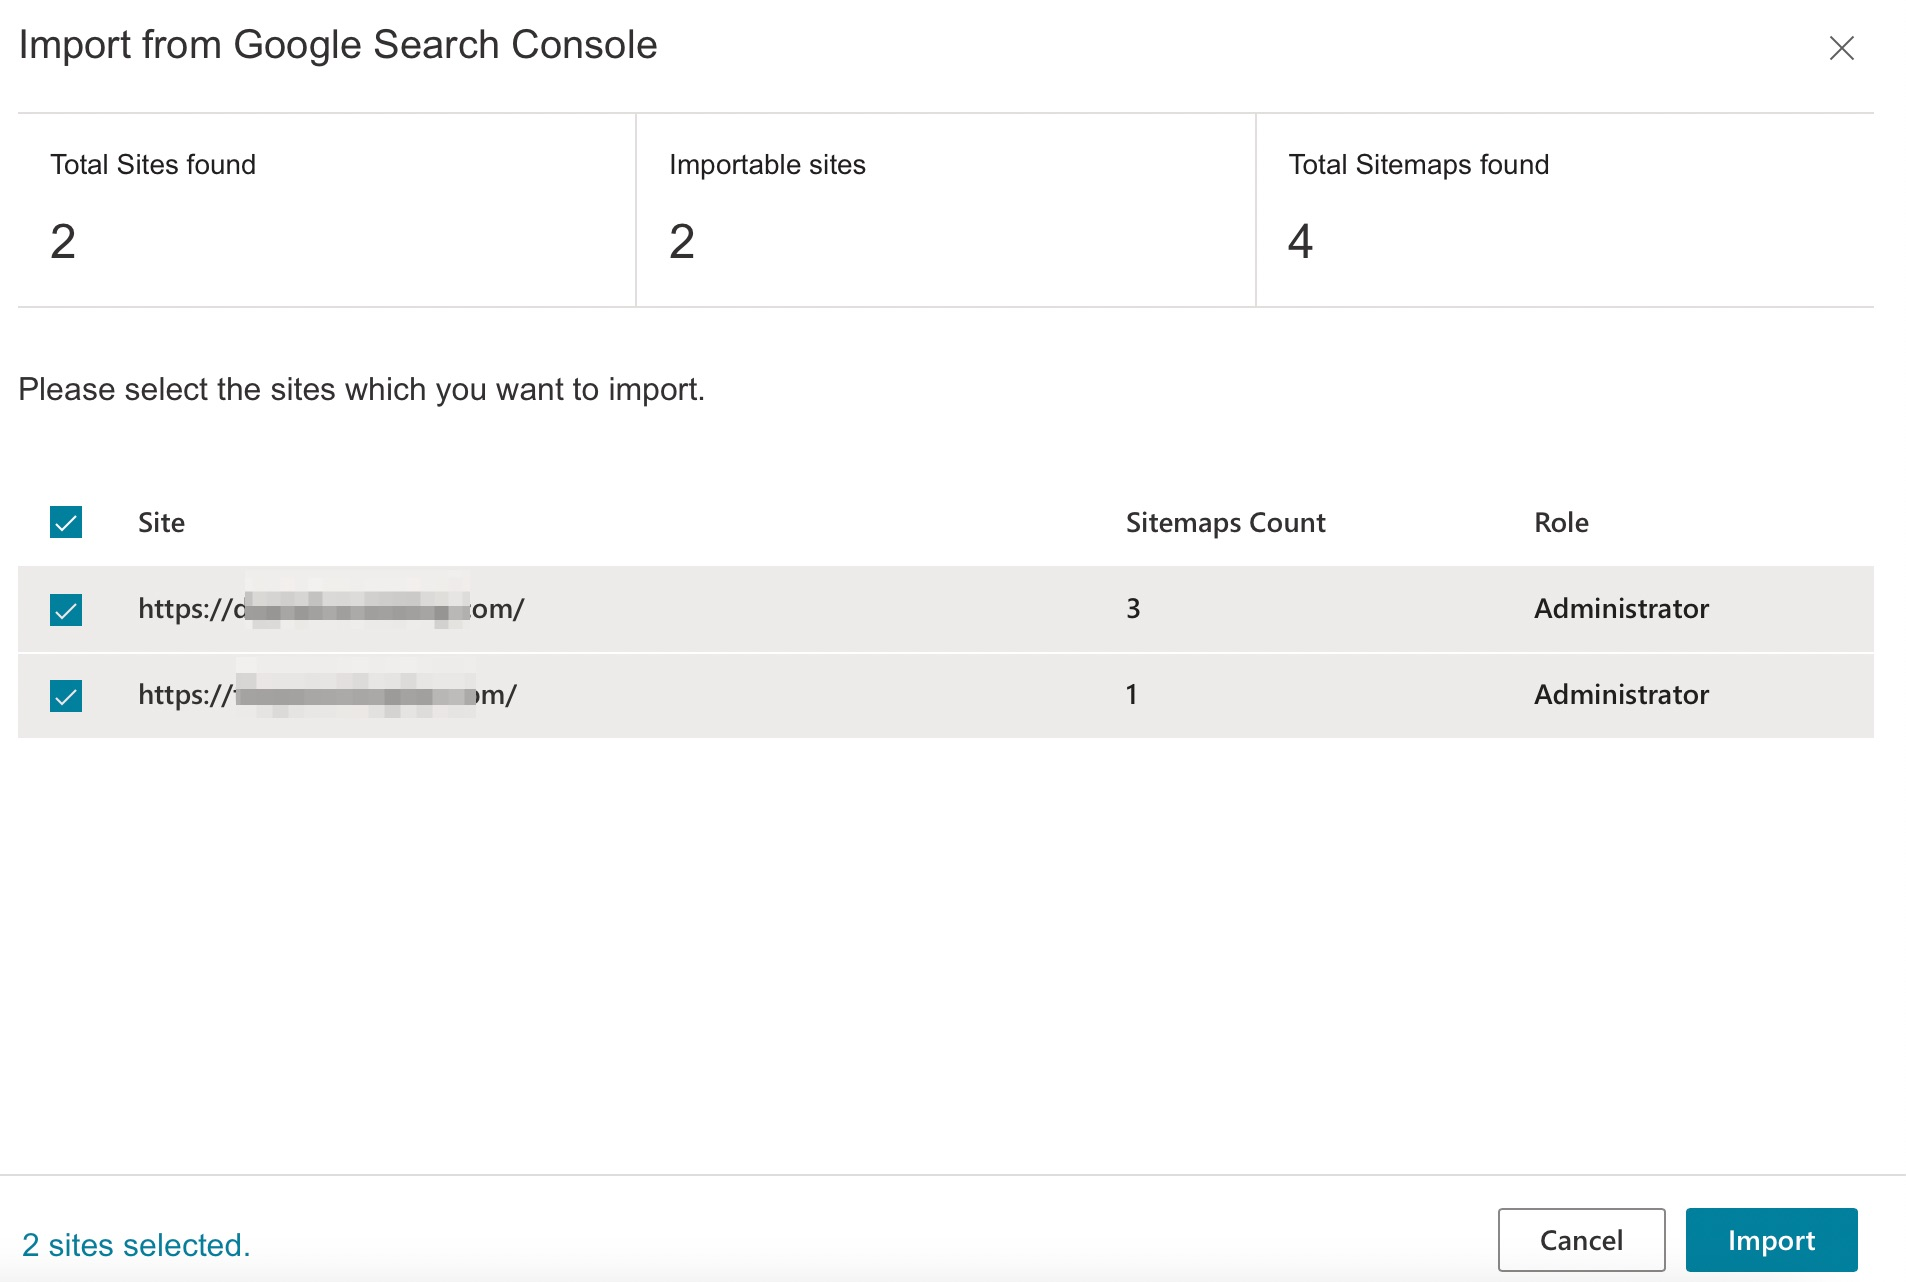 Import from Google Search Console